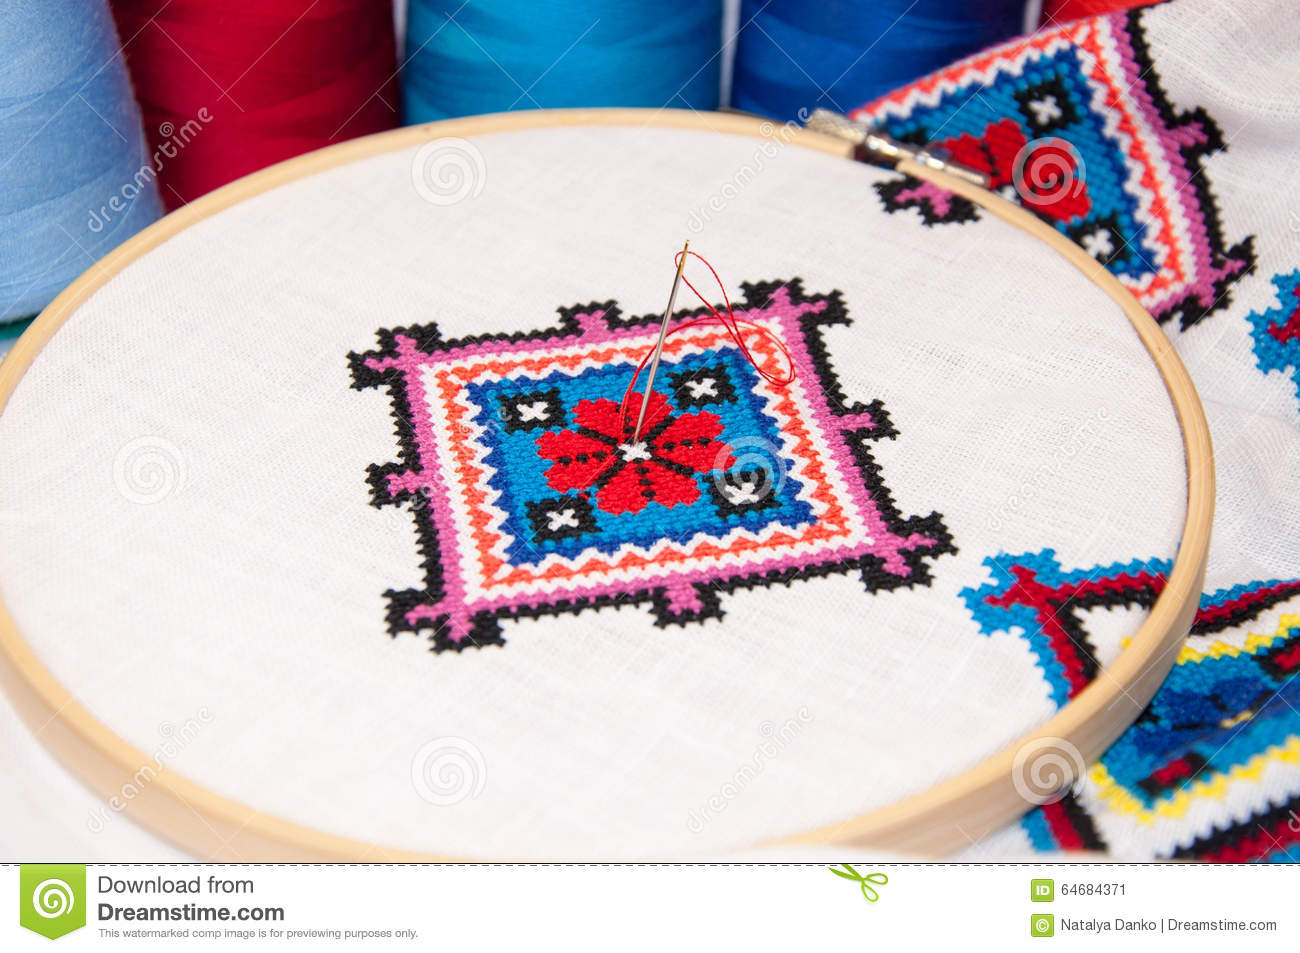 The Fabric In The Hoop With Embroidery Stock Image - Image of ...